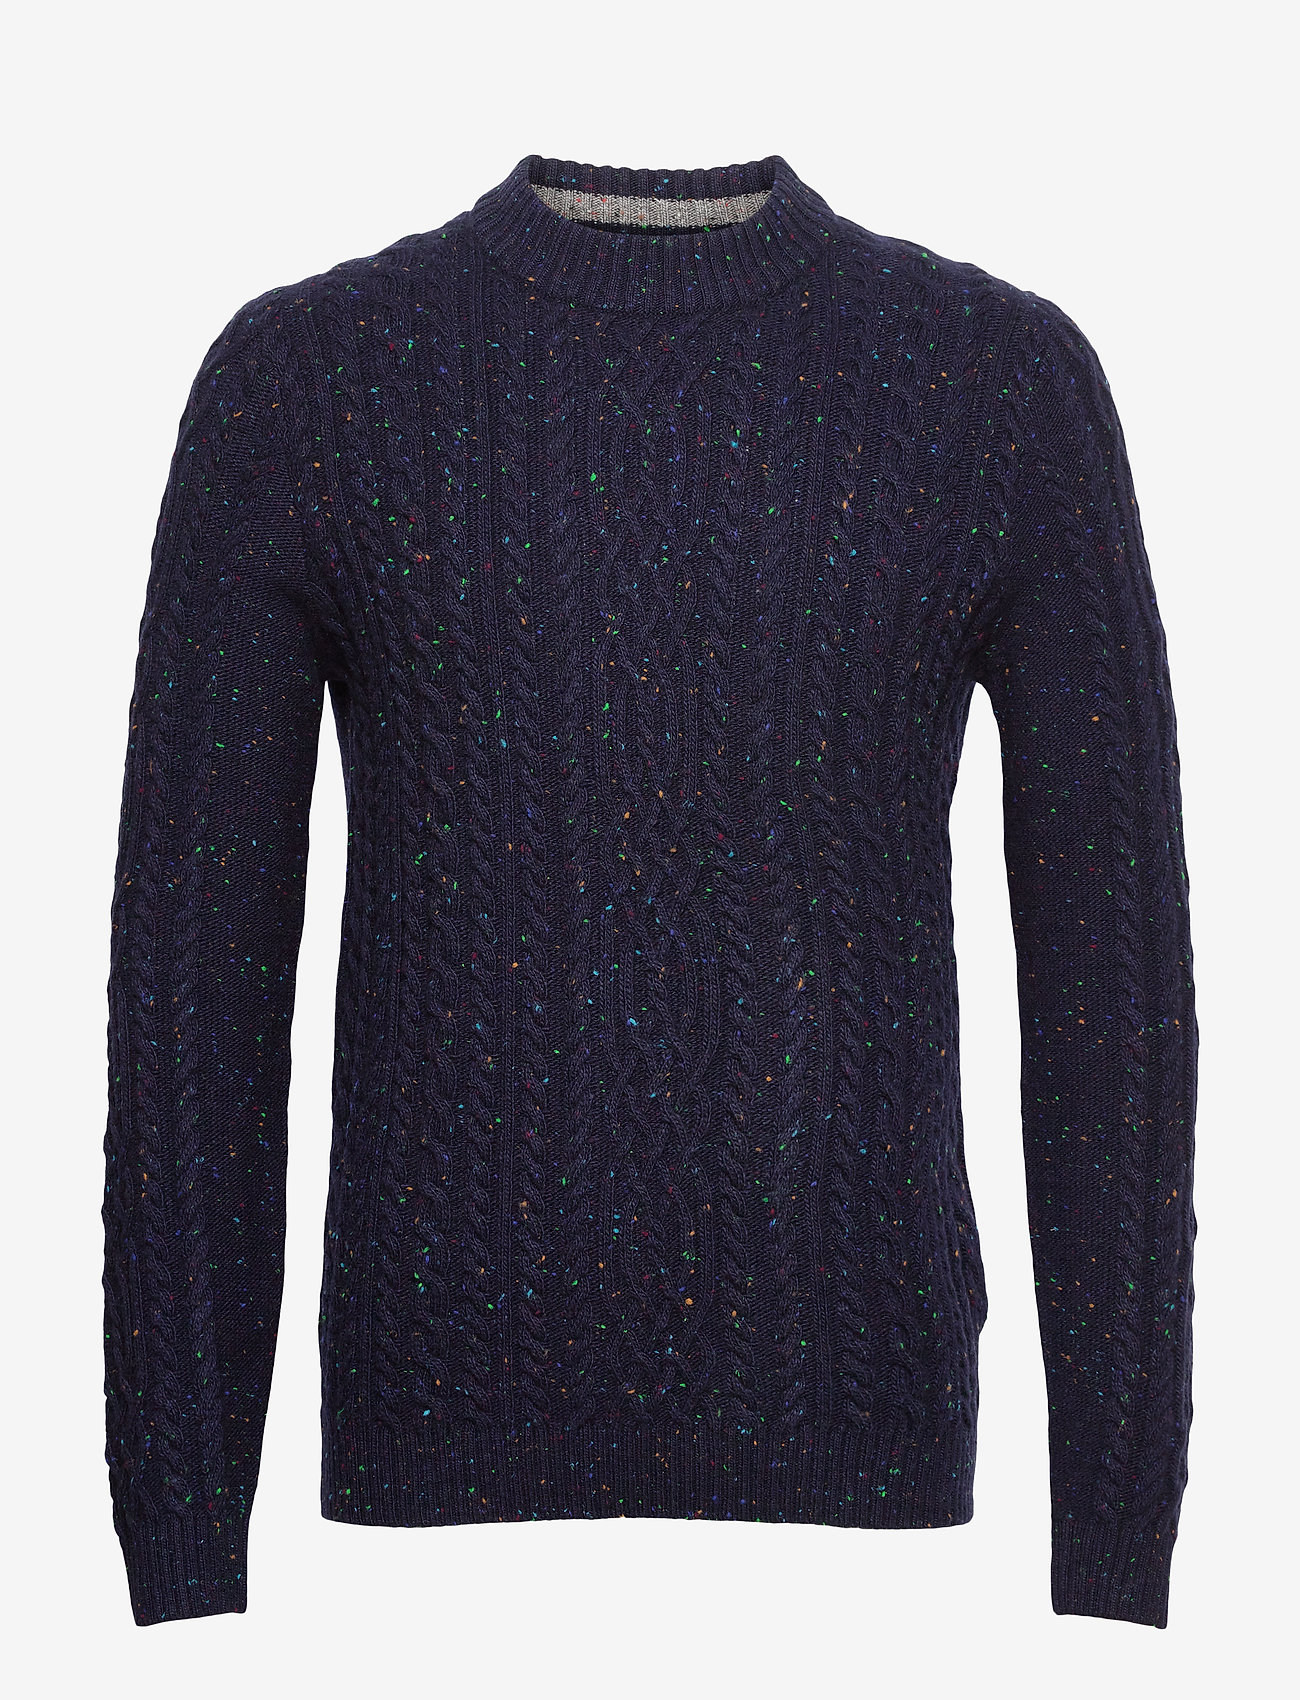 Esprit Casual - Sweaters - tricots basiques - navy 5 - 0